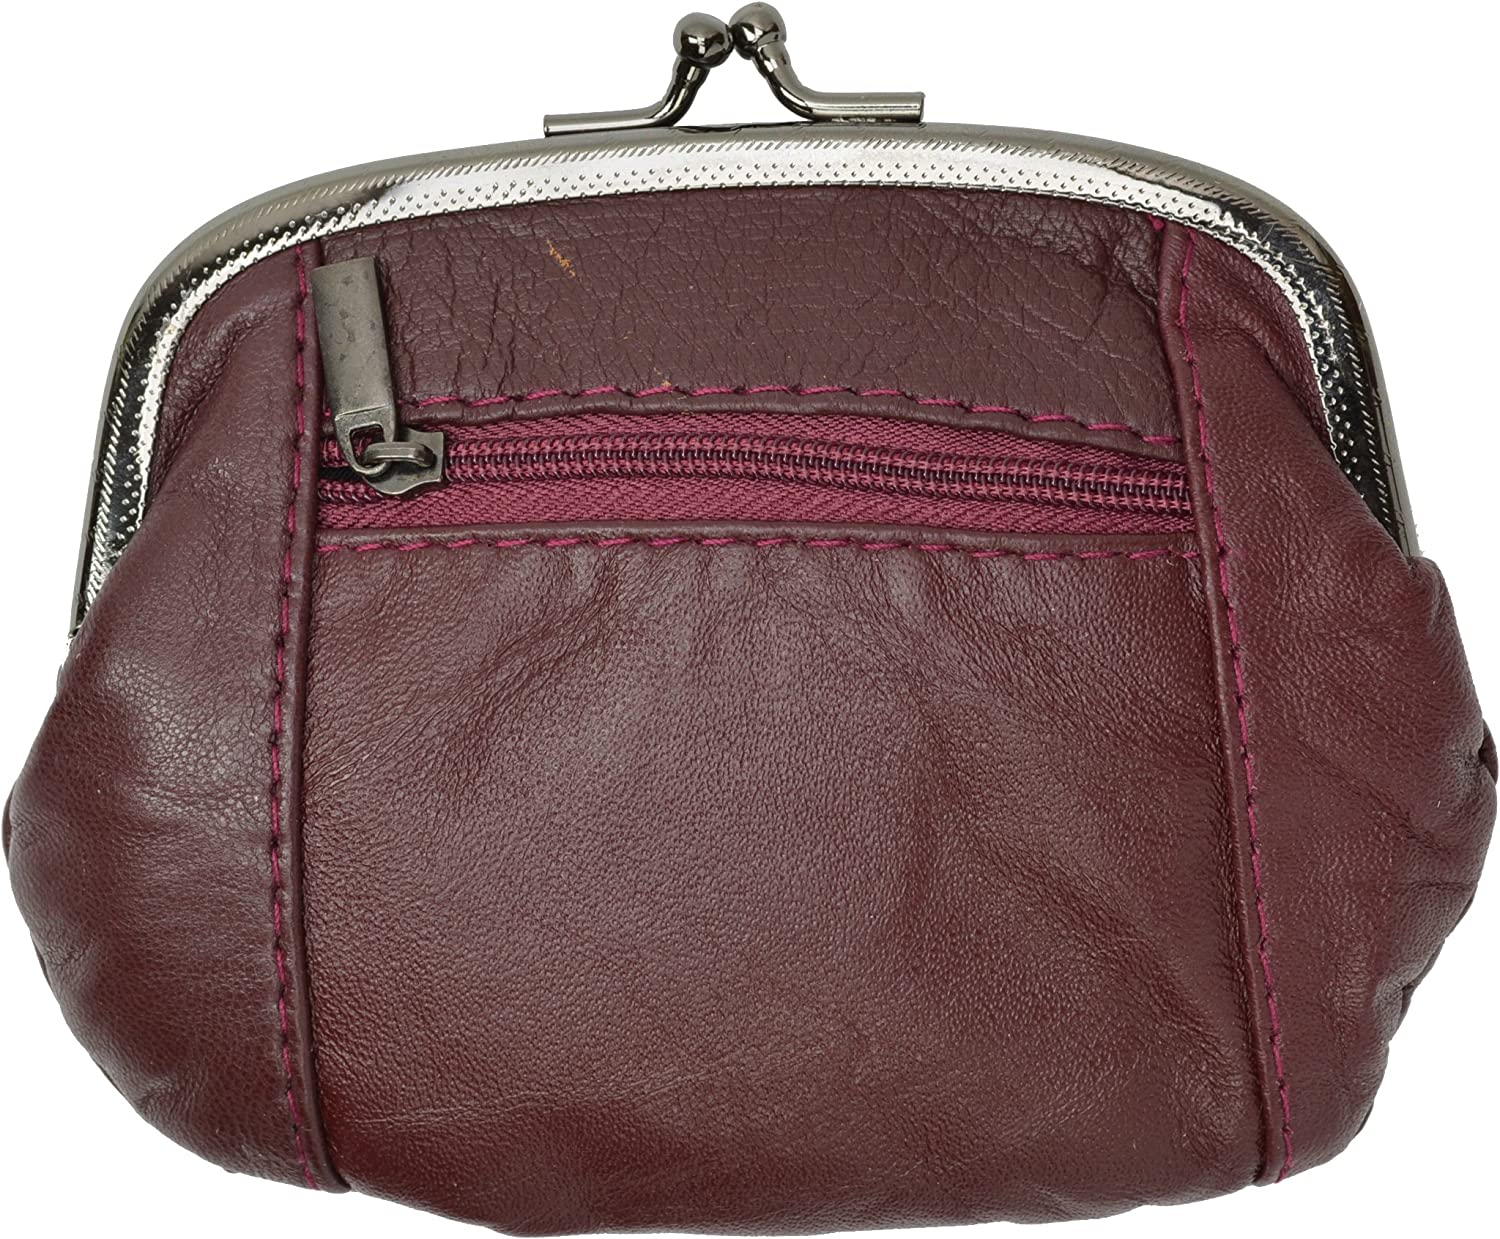 Womens Metal Frame Leather Zippered Coin Purse with Id Window By Marshal